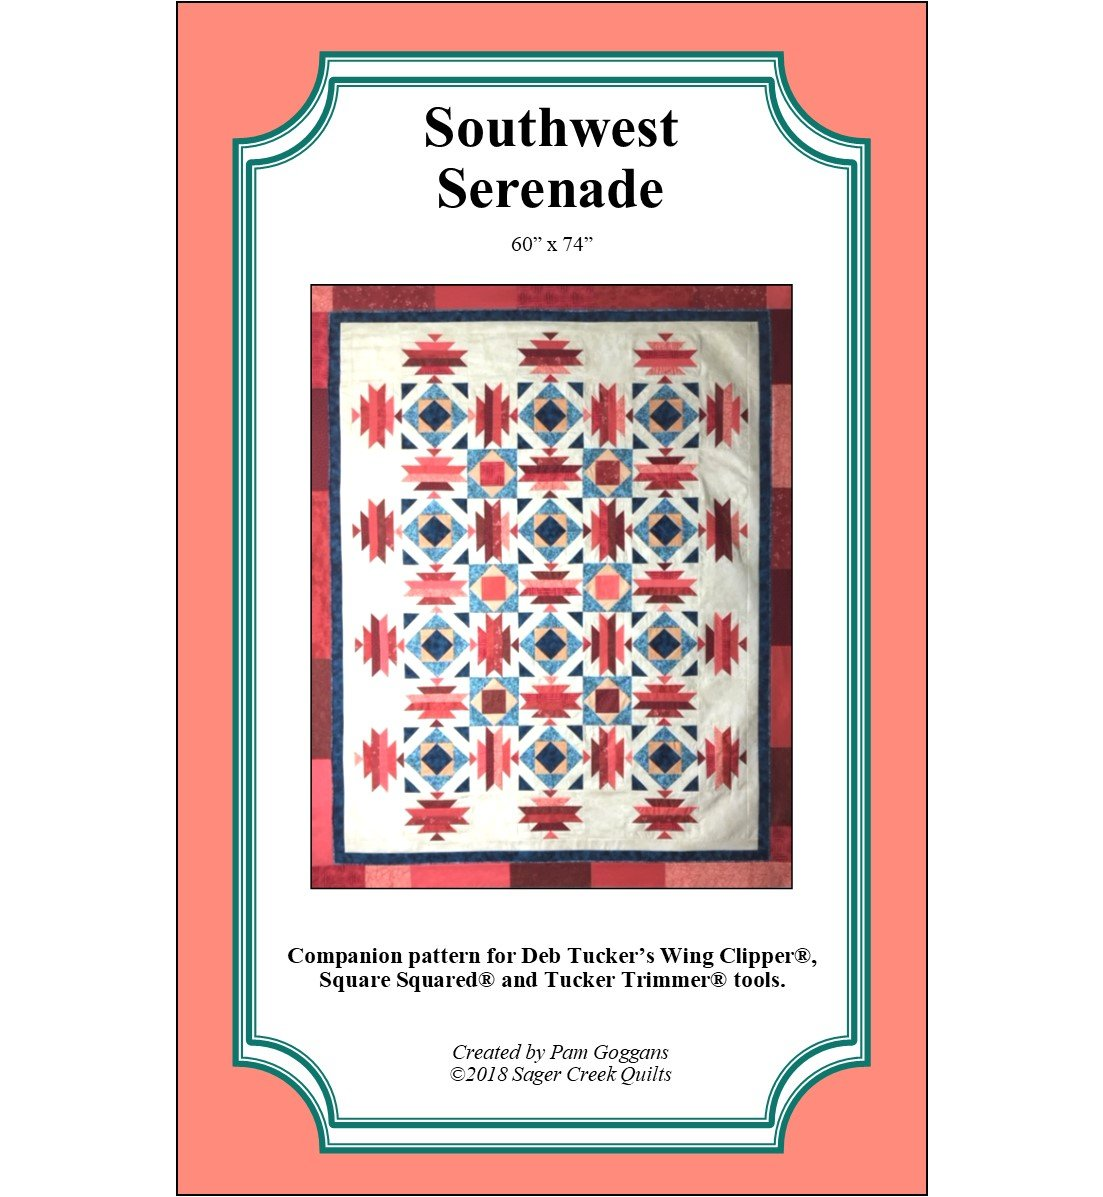 SCQ129 - Southwest Serenade